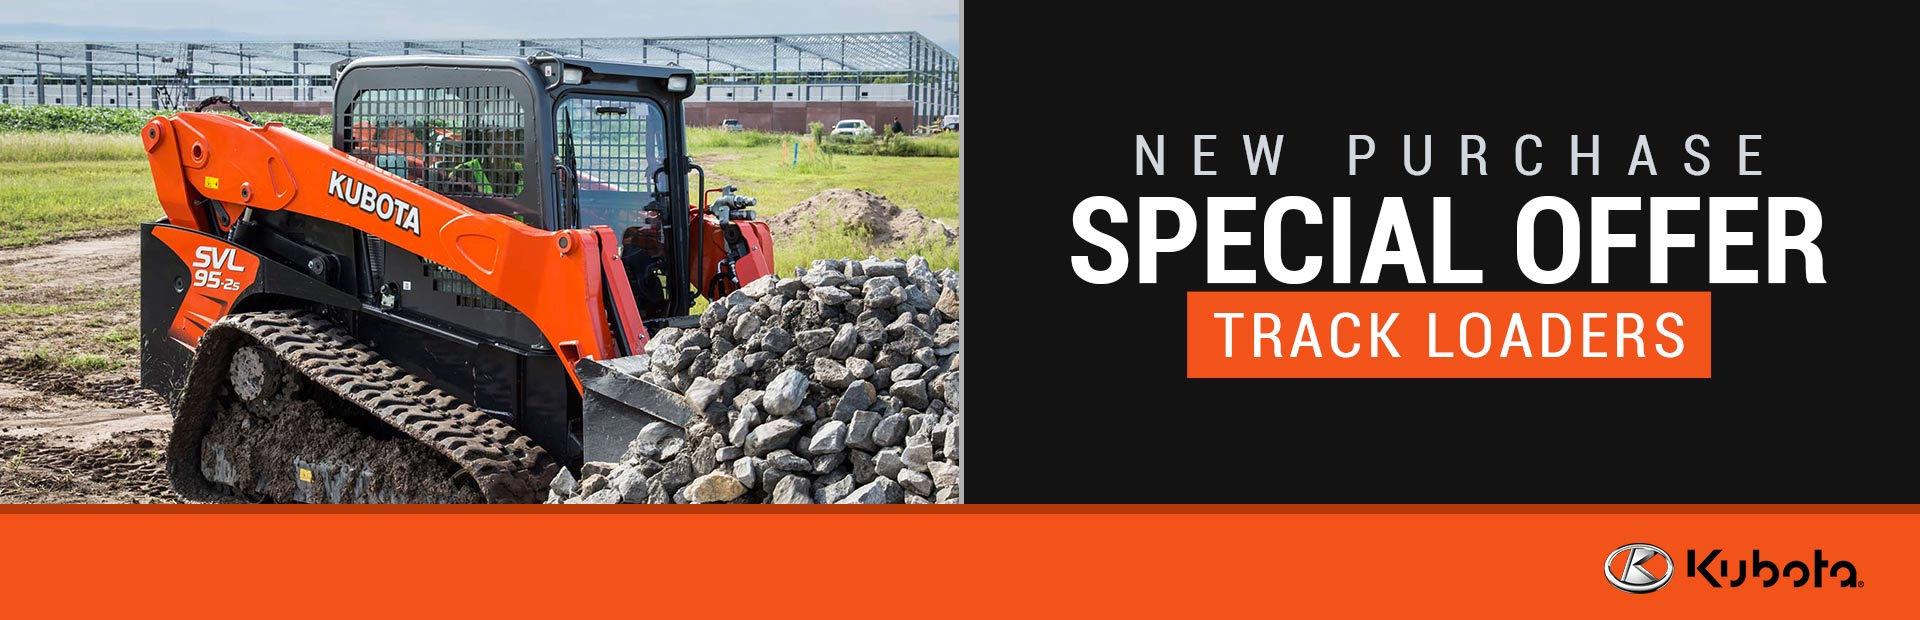 New Purchase Special Offer - Track Loaders